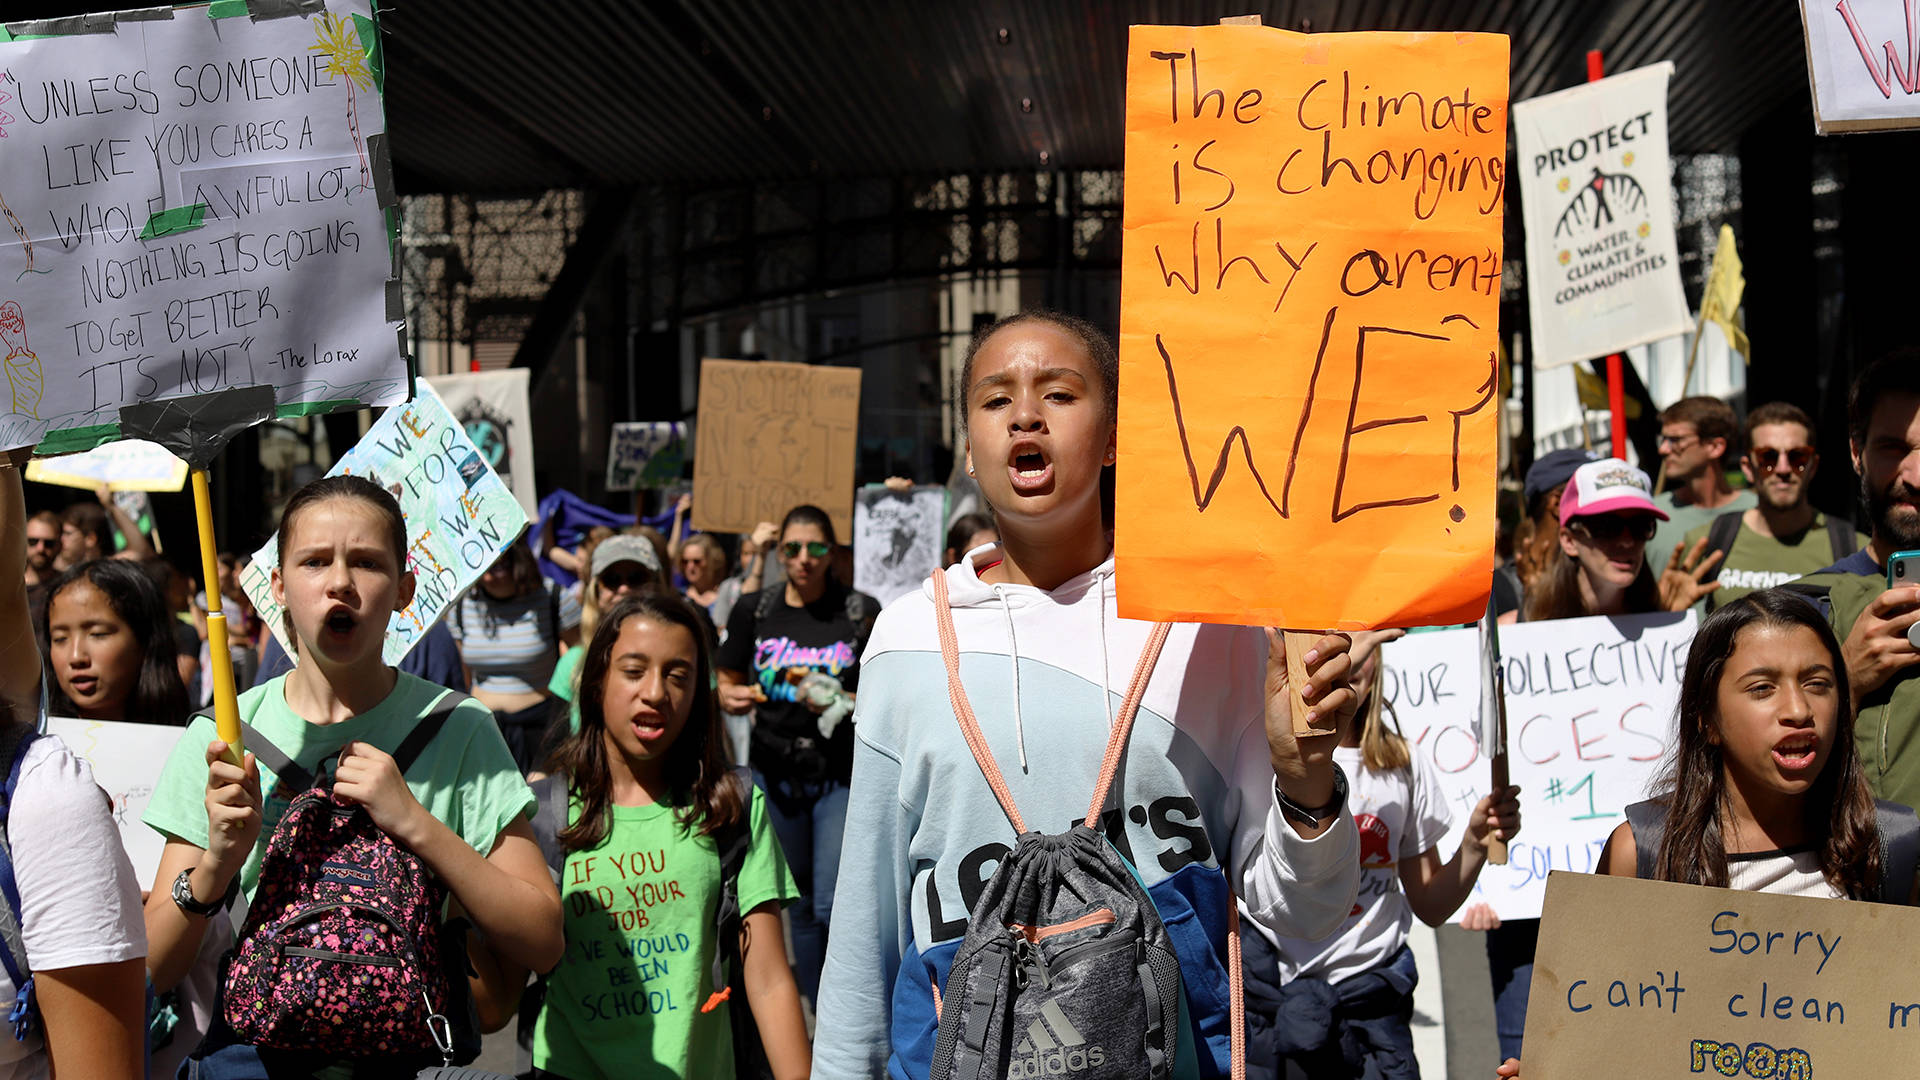 Tens of thousands of demonstrators gathered in San Francisco for the Climate Strike on Sept. 20, 2019. Nastia Voynovskaya